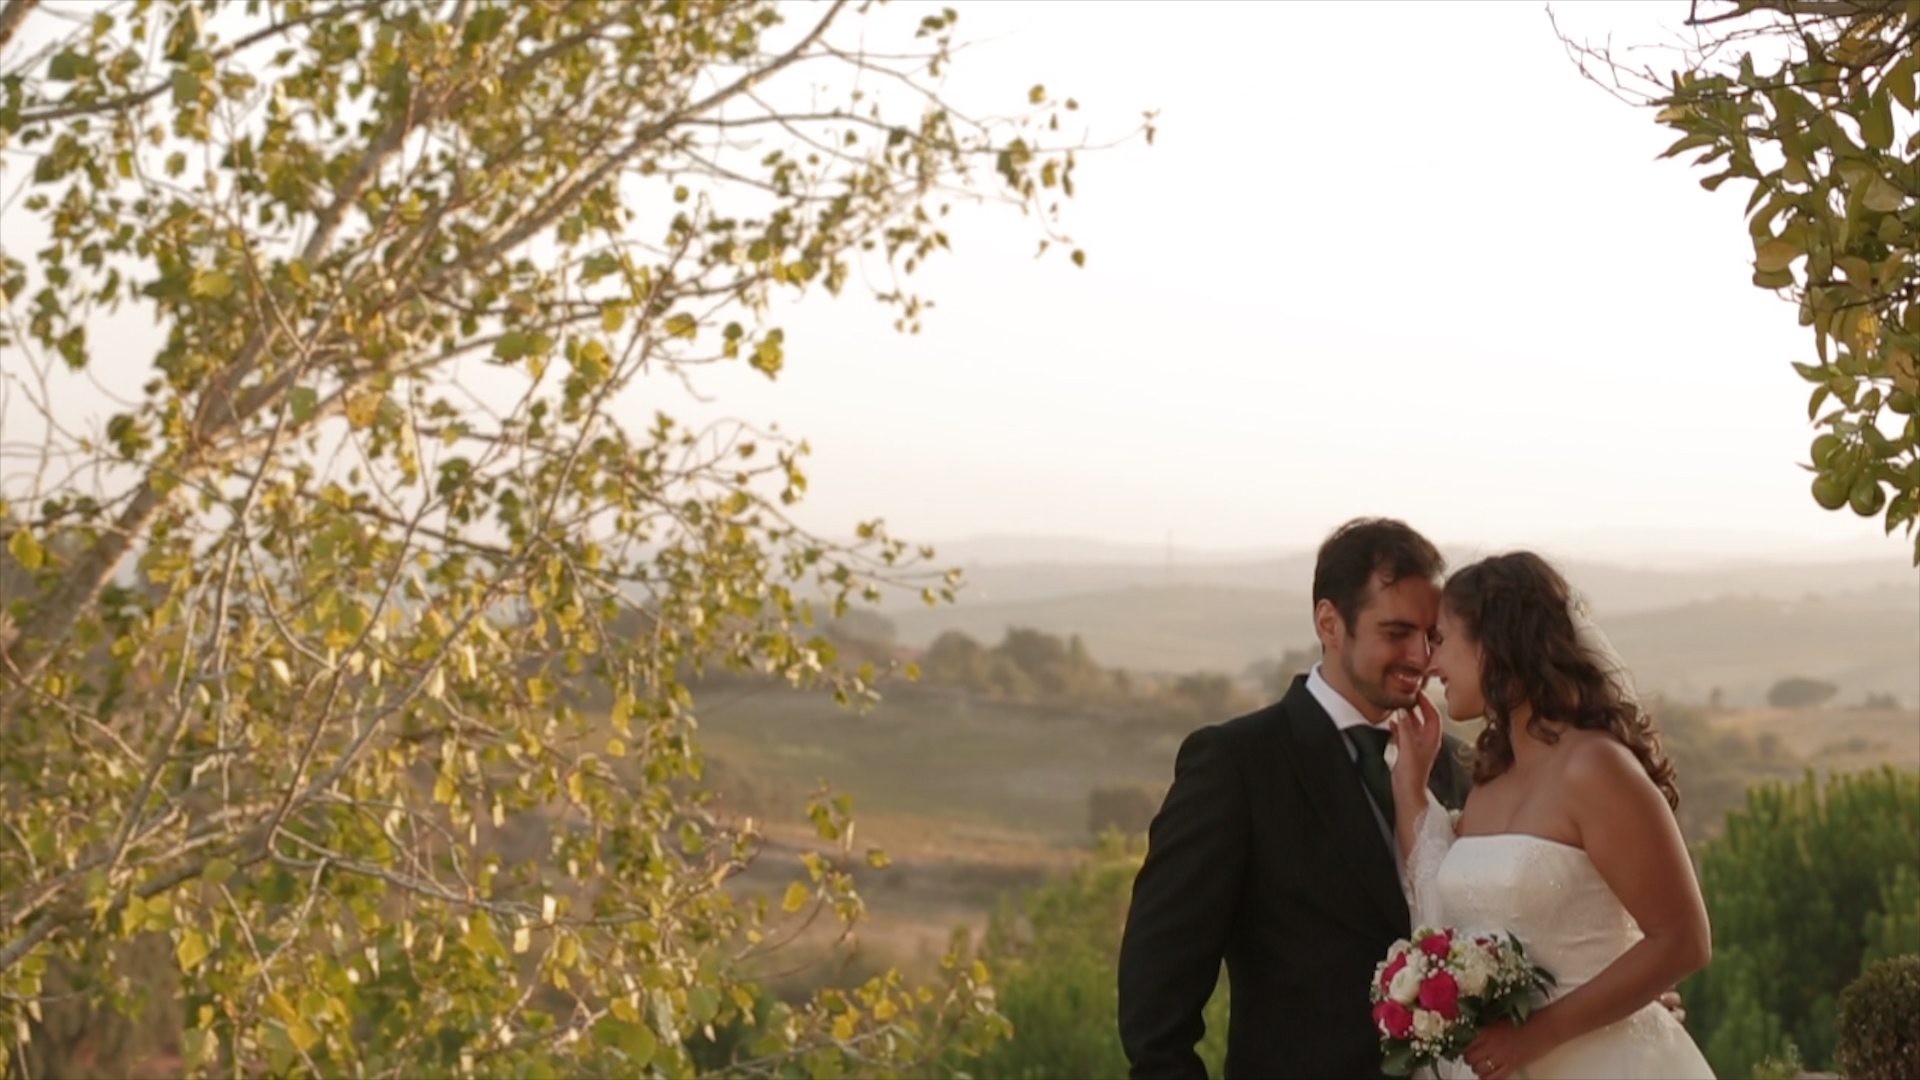 Margarida e Francisco {Clip do dia} in Quinta do Valle do Riacho, Alenquer 25_09_2015